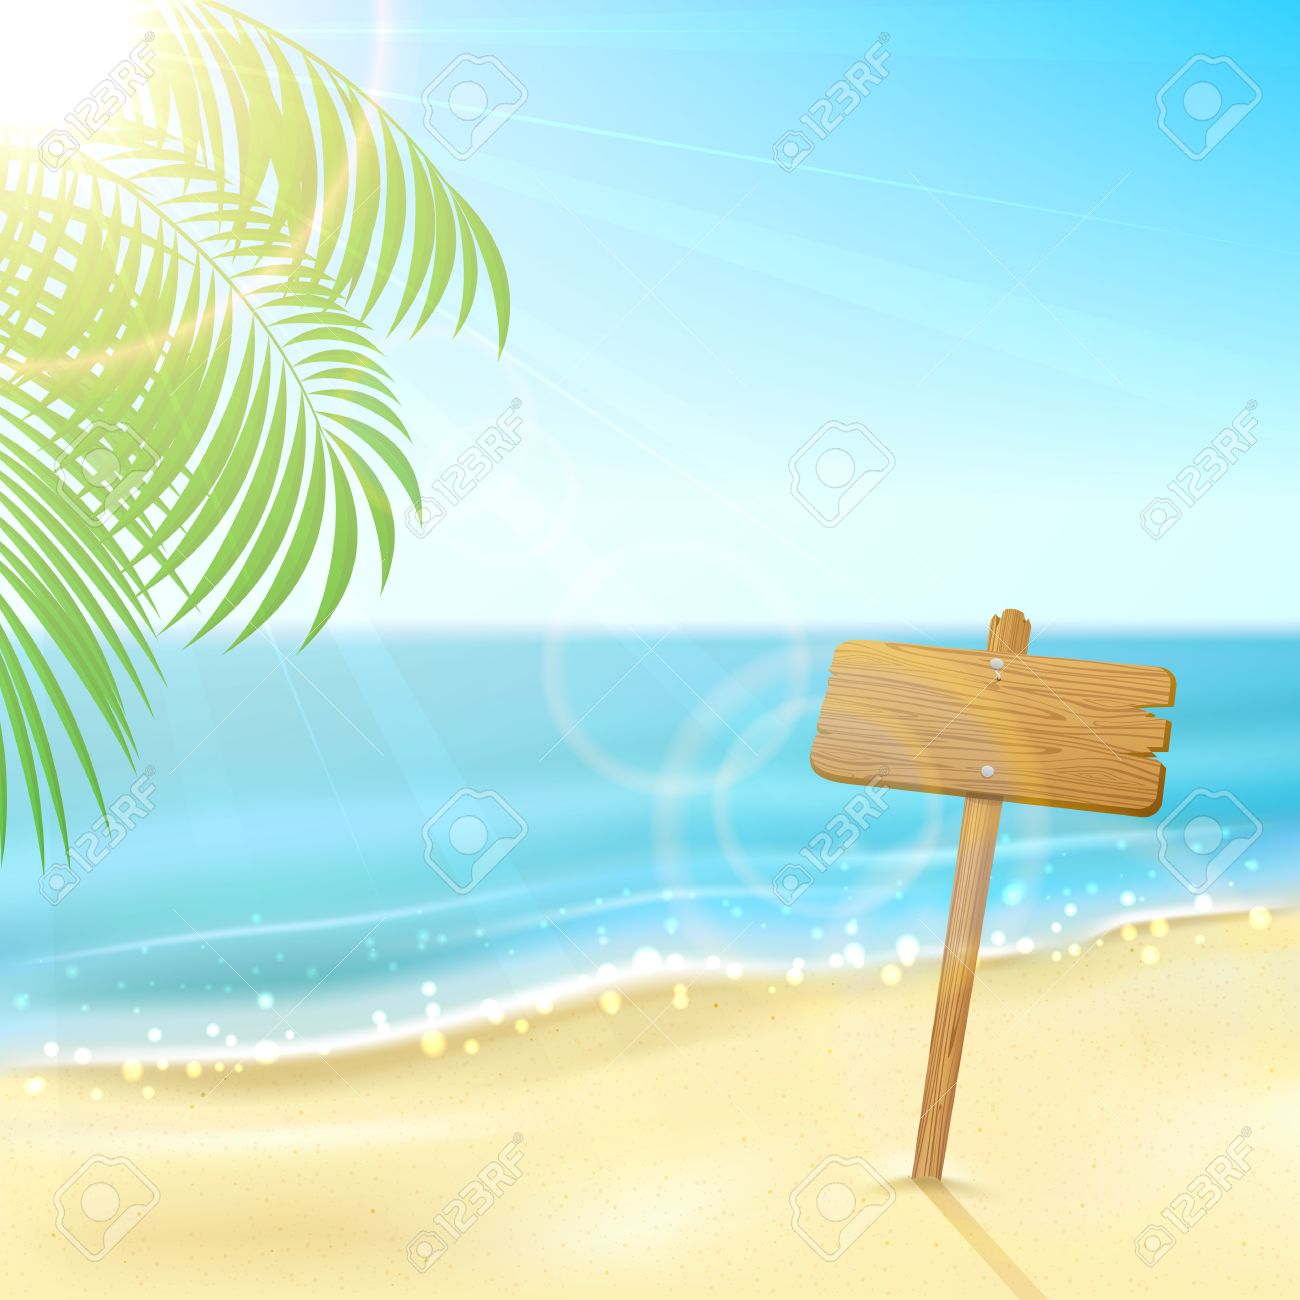 Tropical Background With Wooden Sign On Sandy Beach Illustration Stock Vector